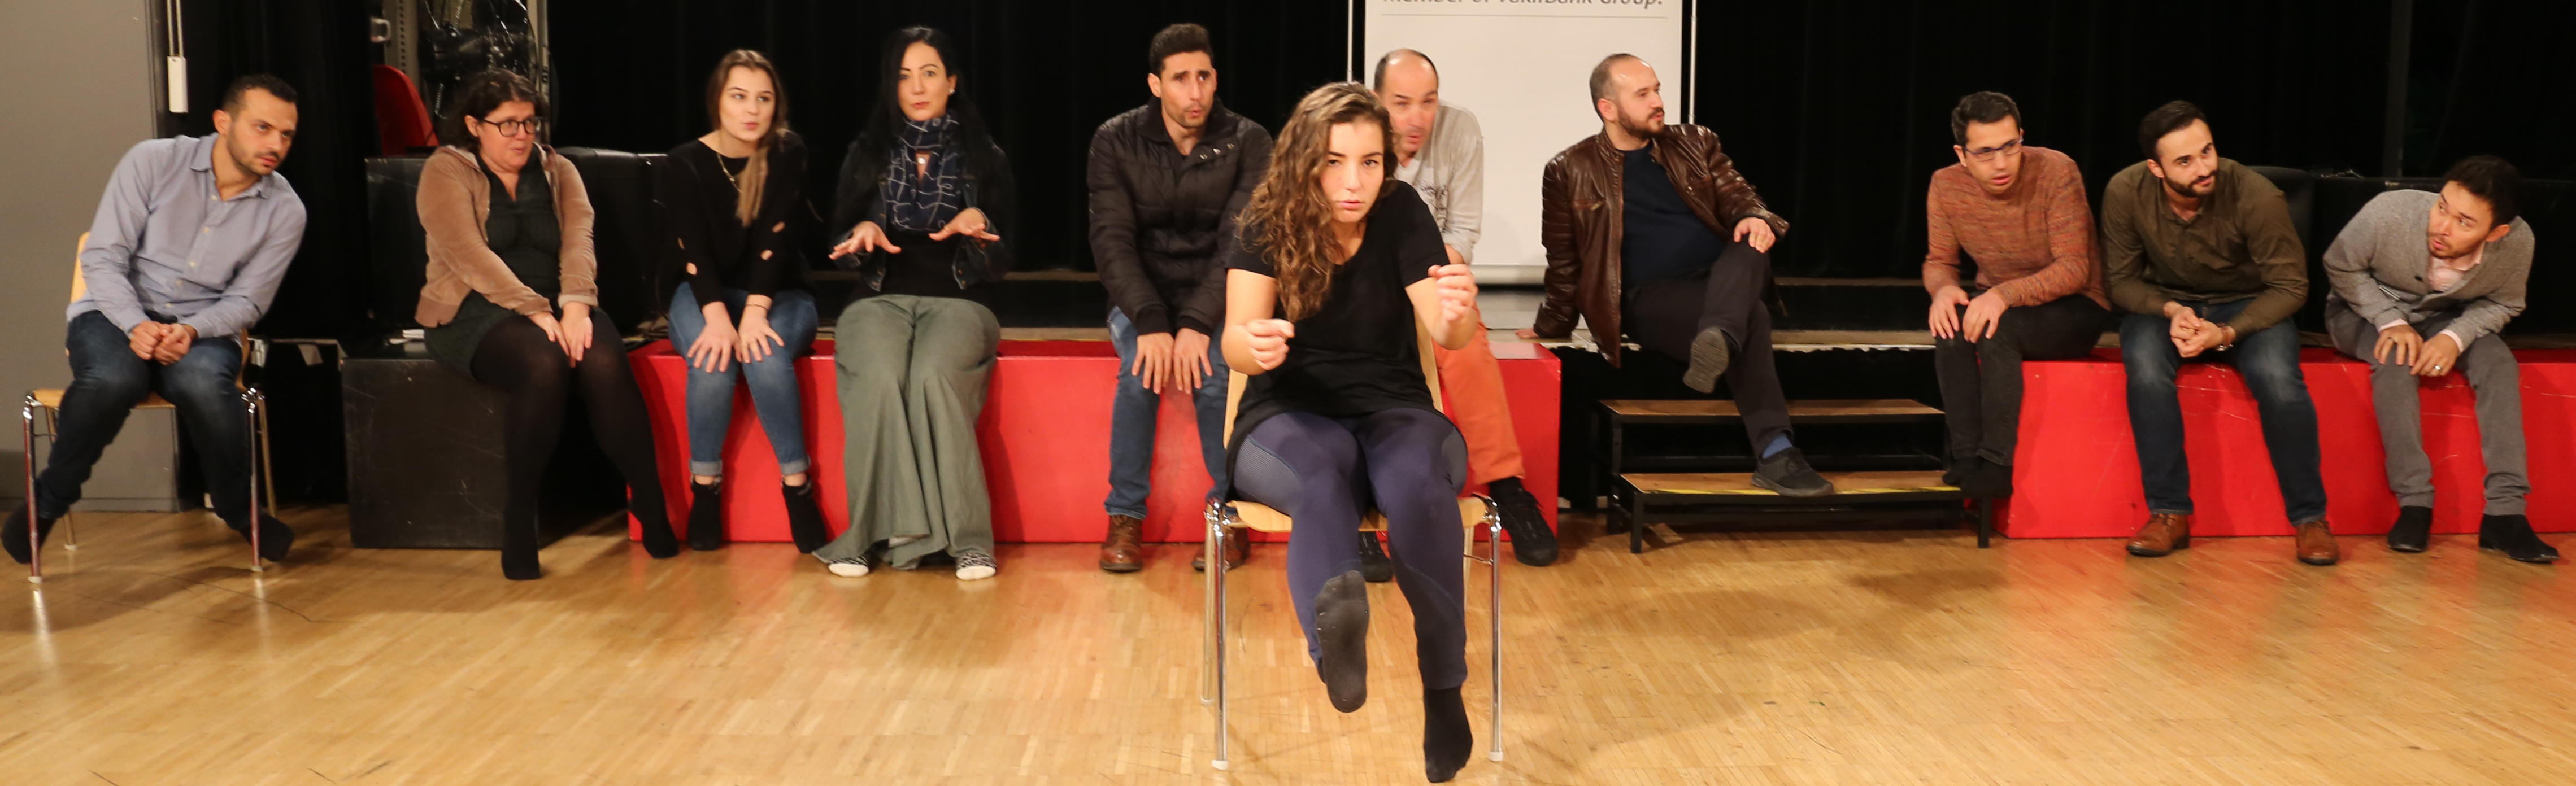 Offene Multilinguale Theaterklasse